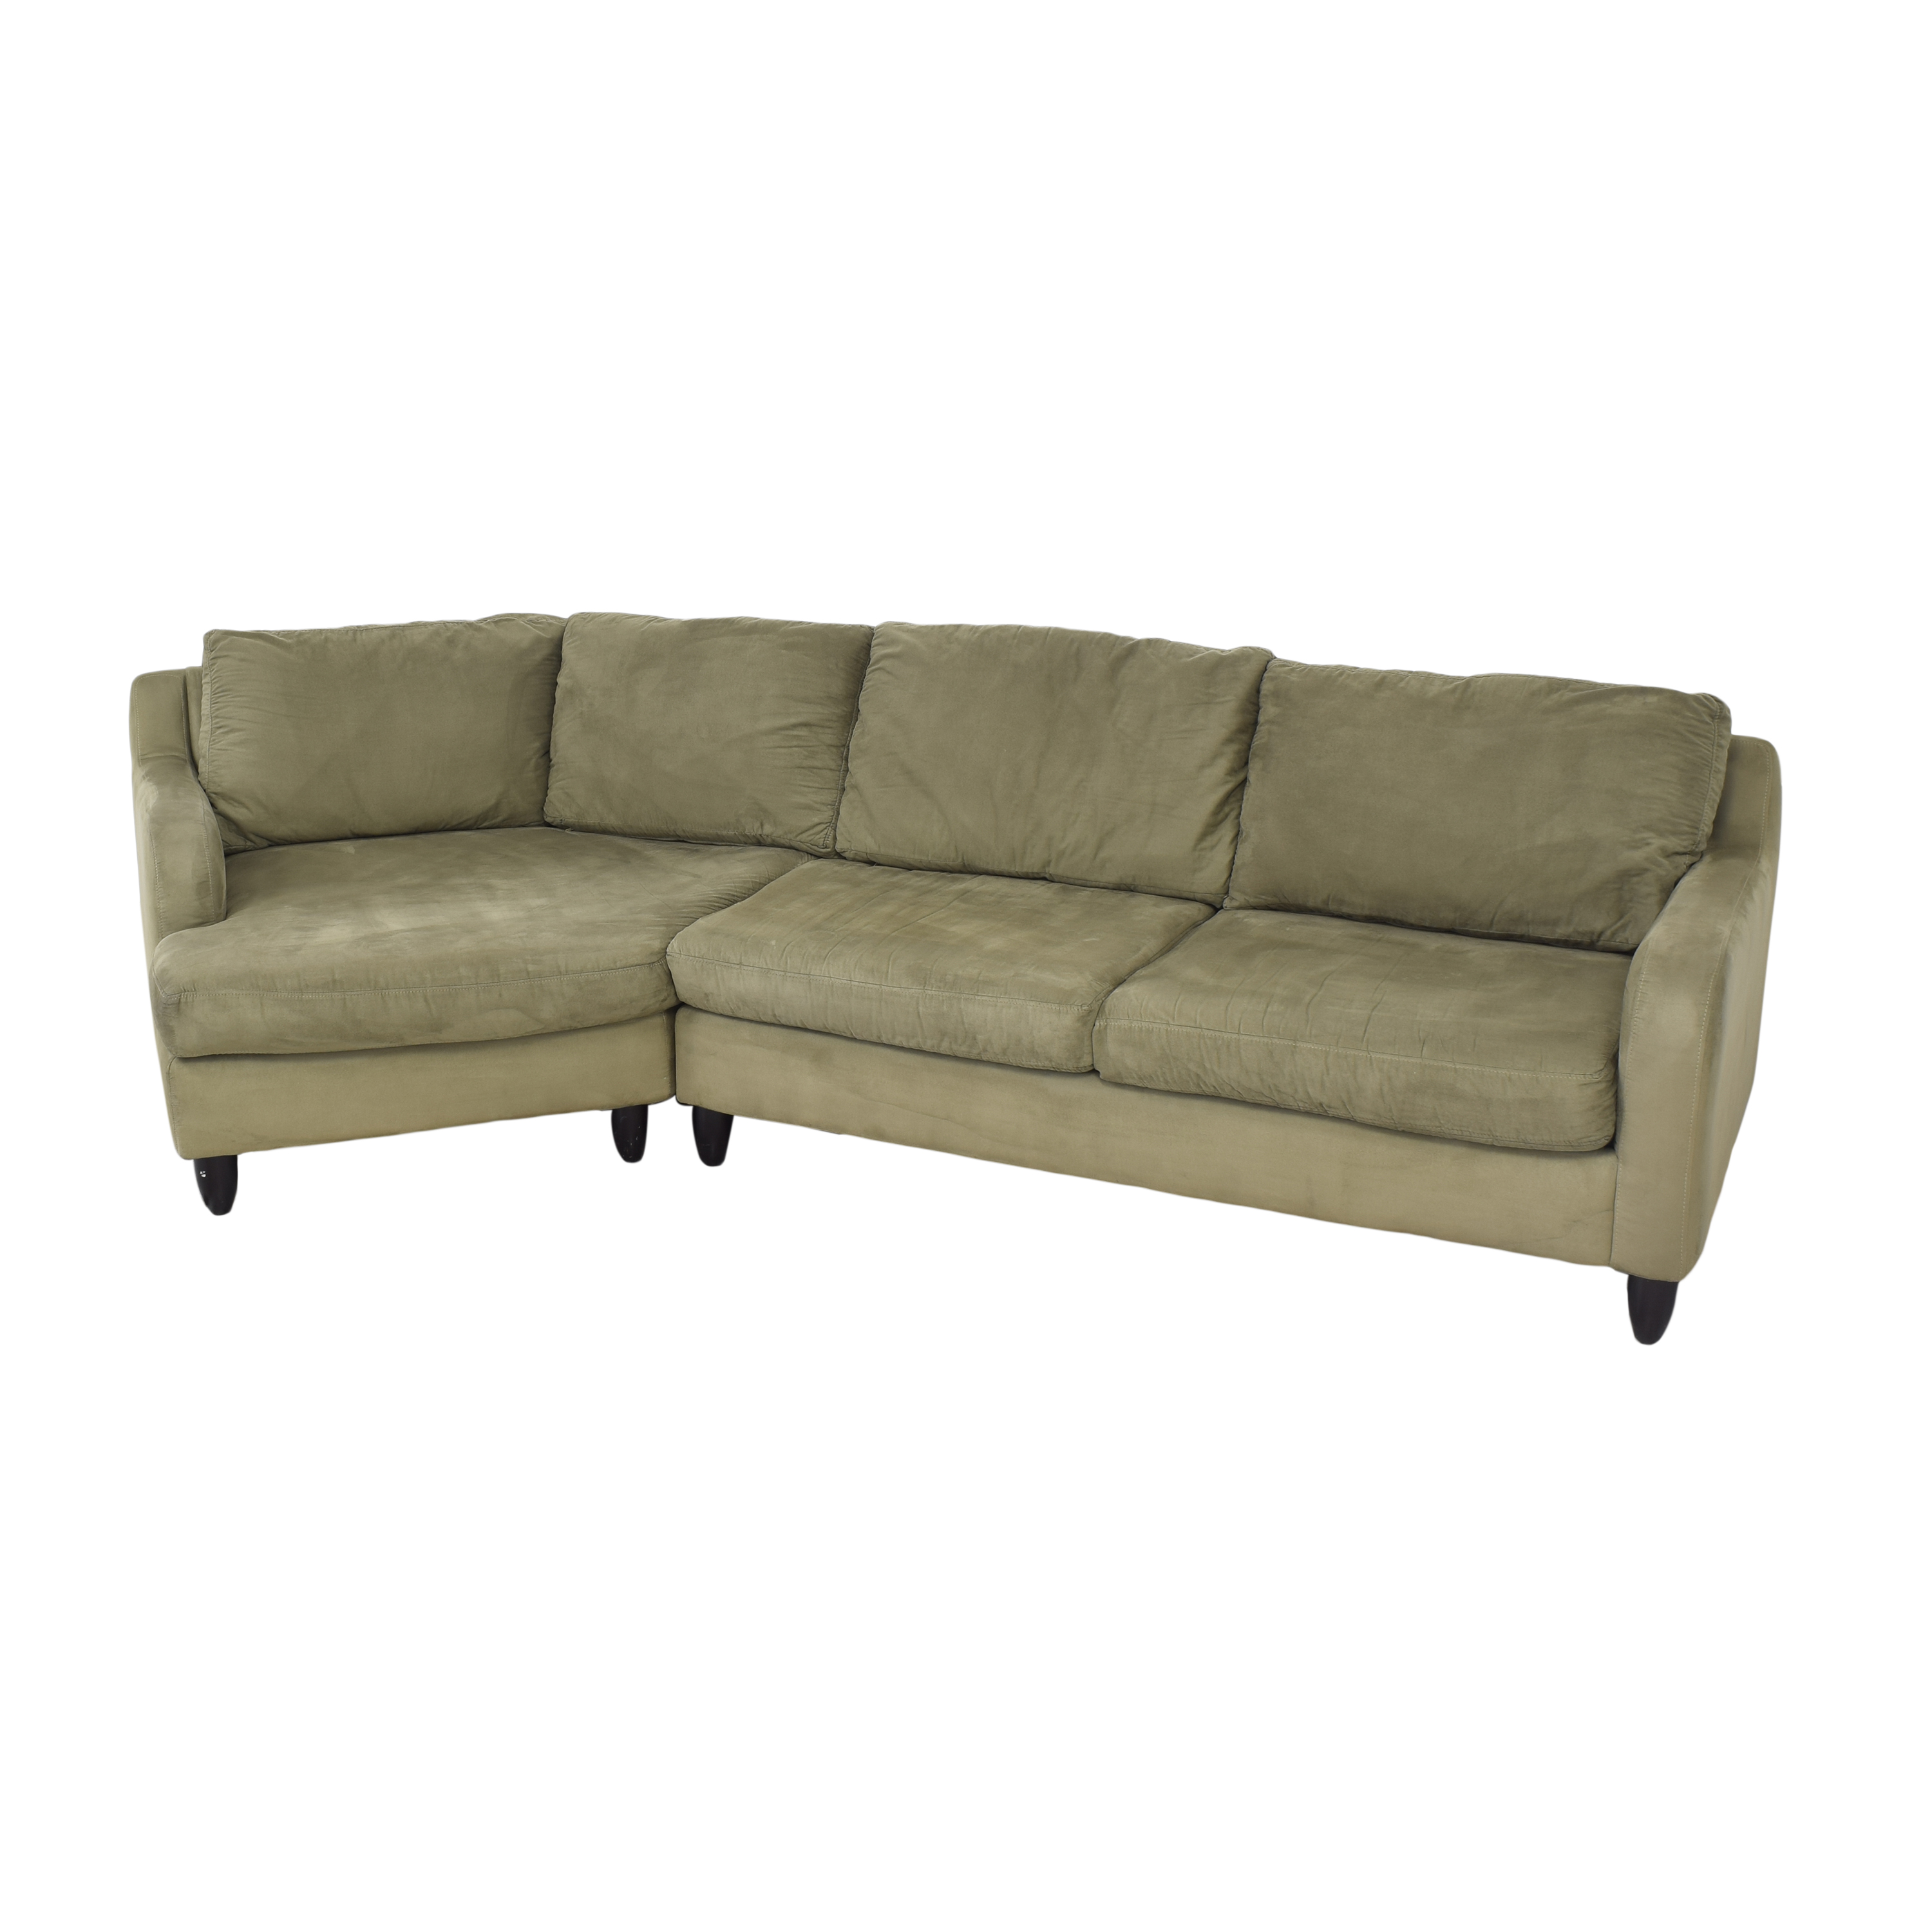 Max Home Max Home Jessica Sectional Sofa discount